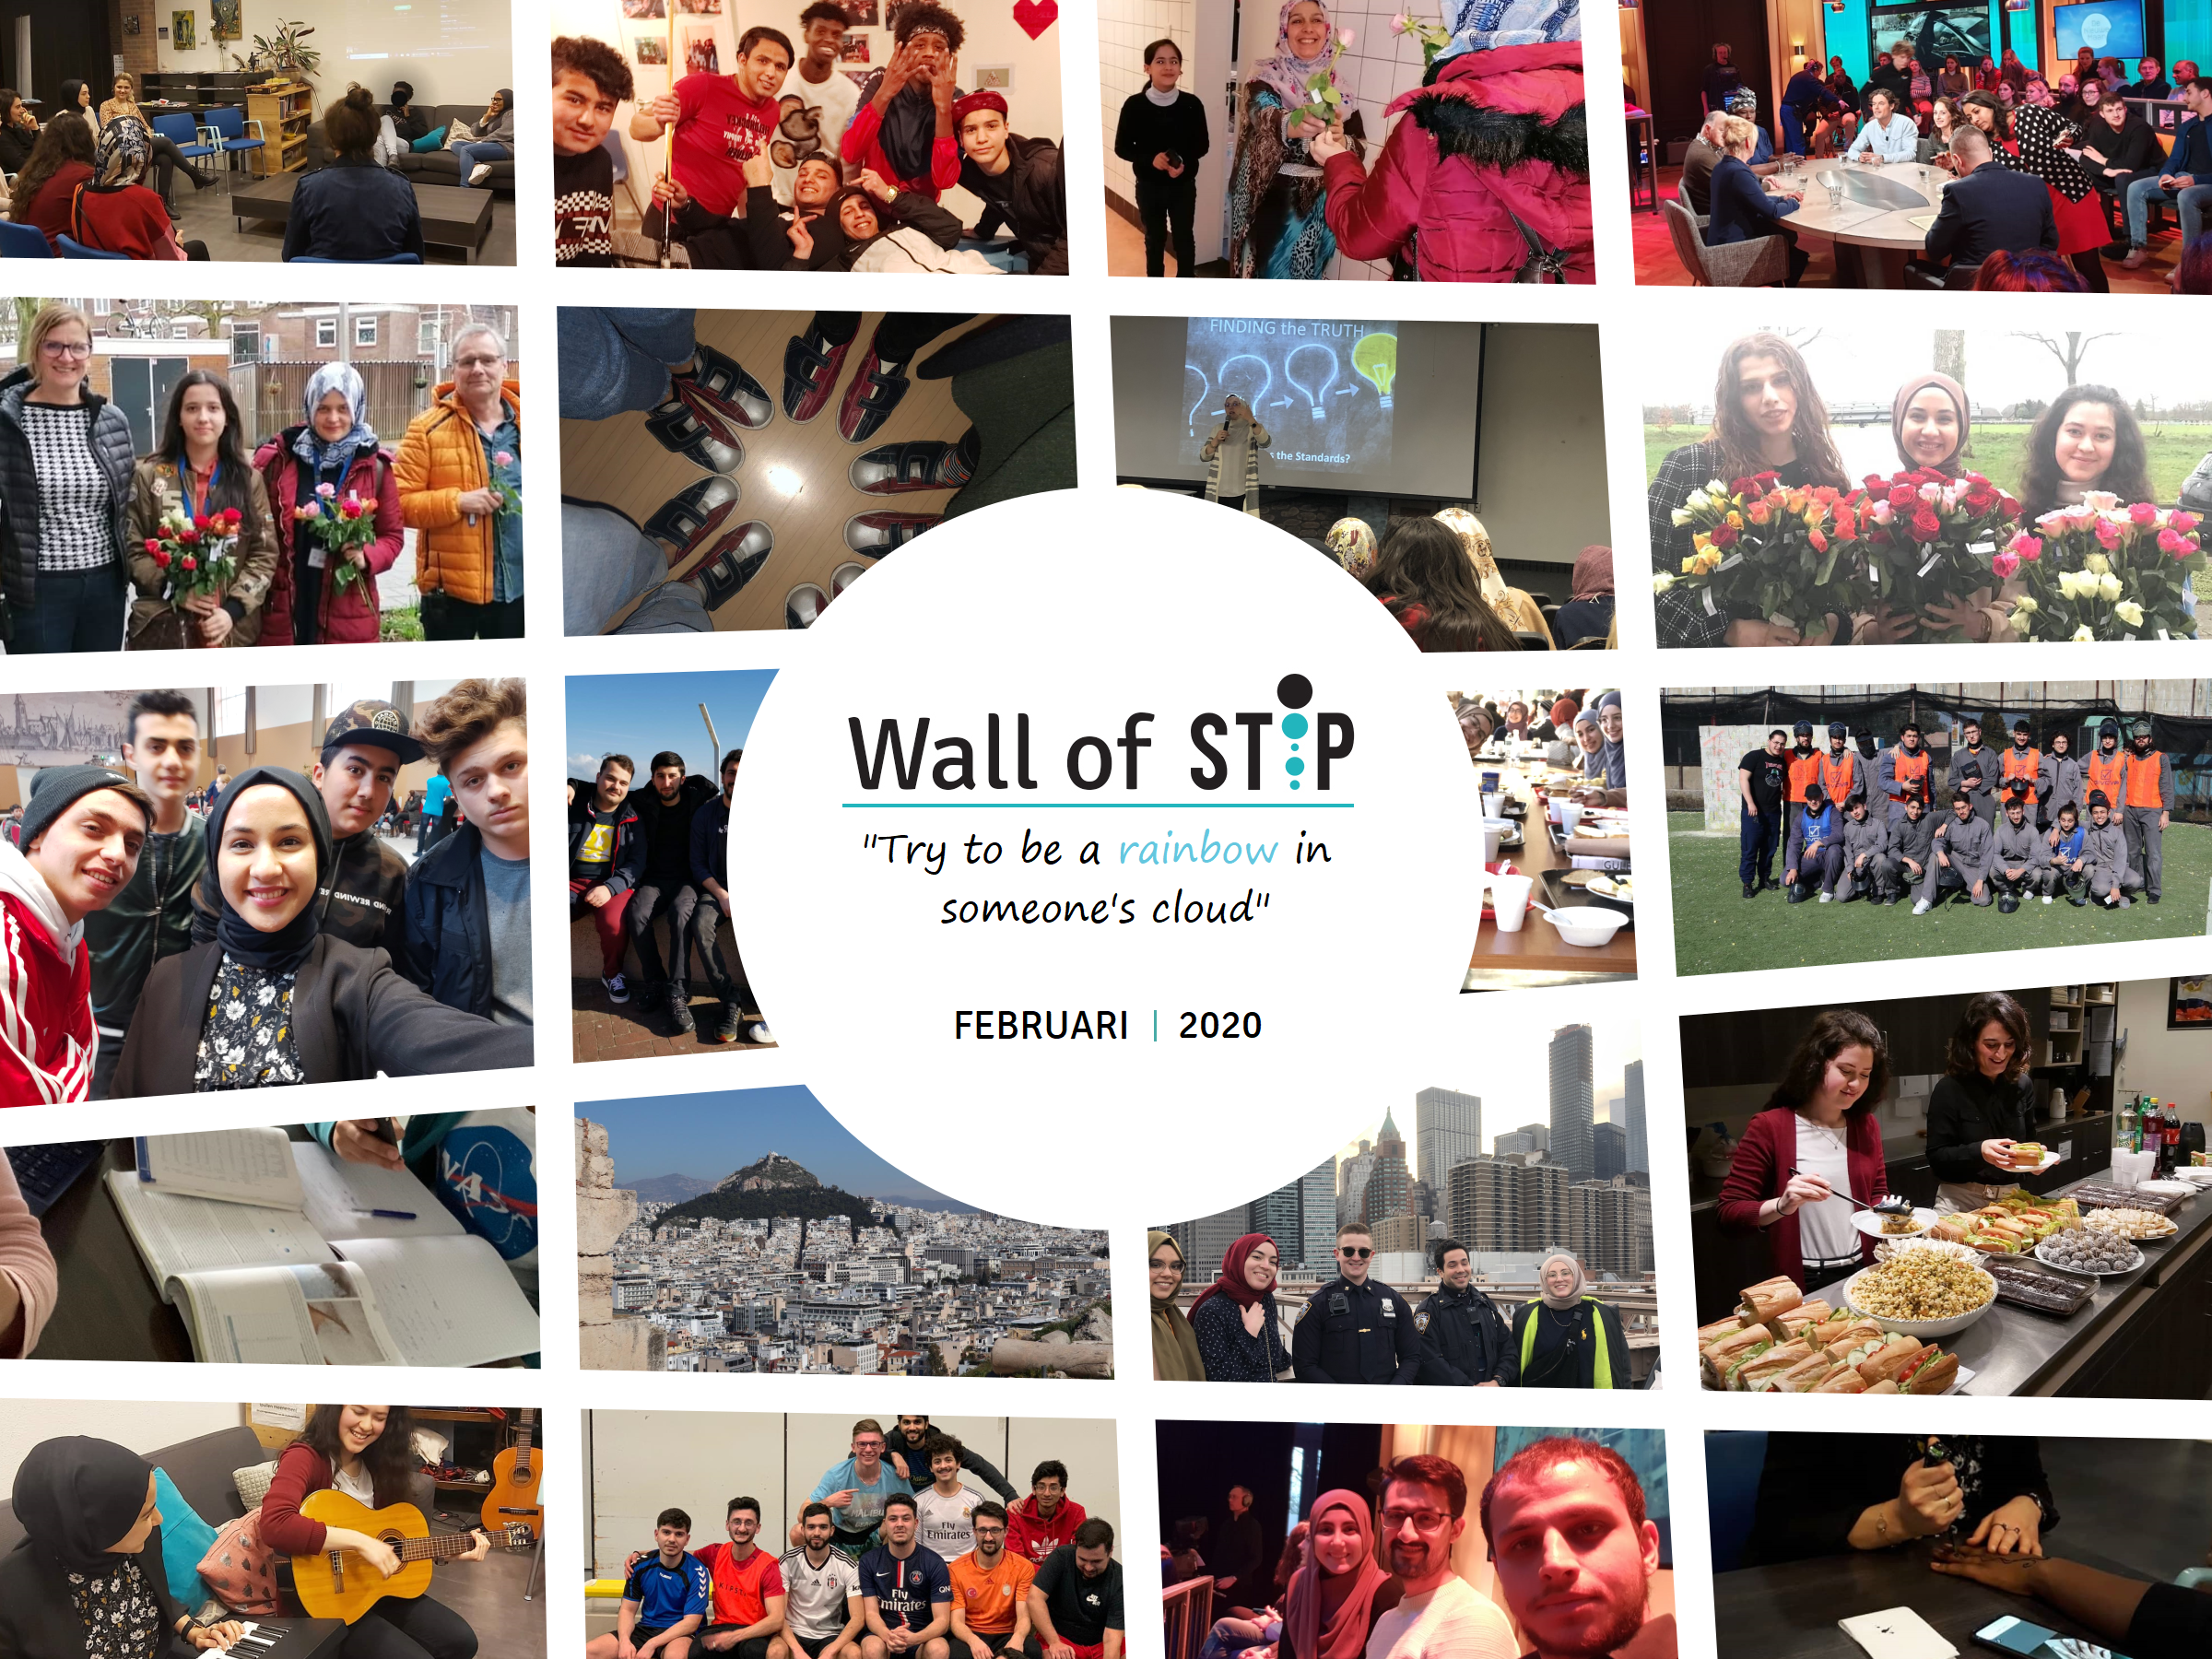 Wall of Stip - Februari 2020